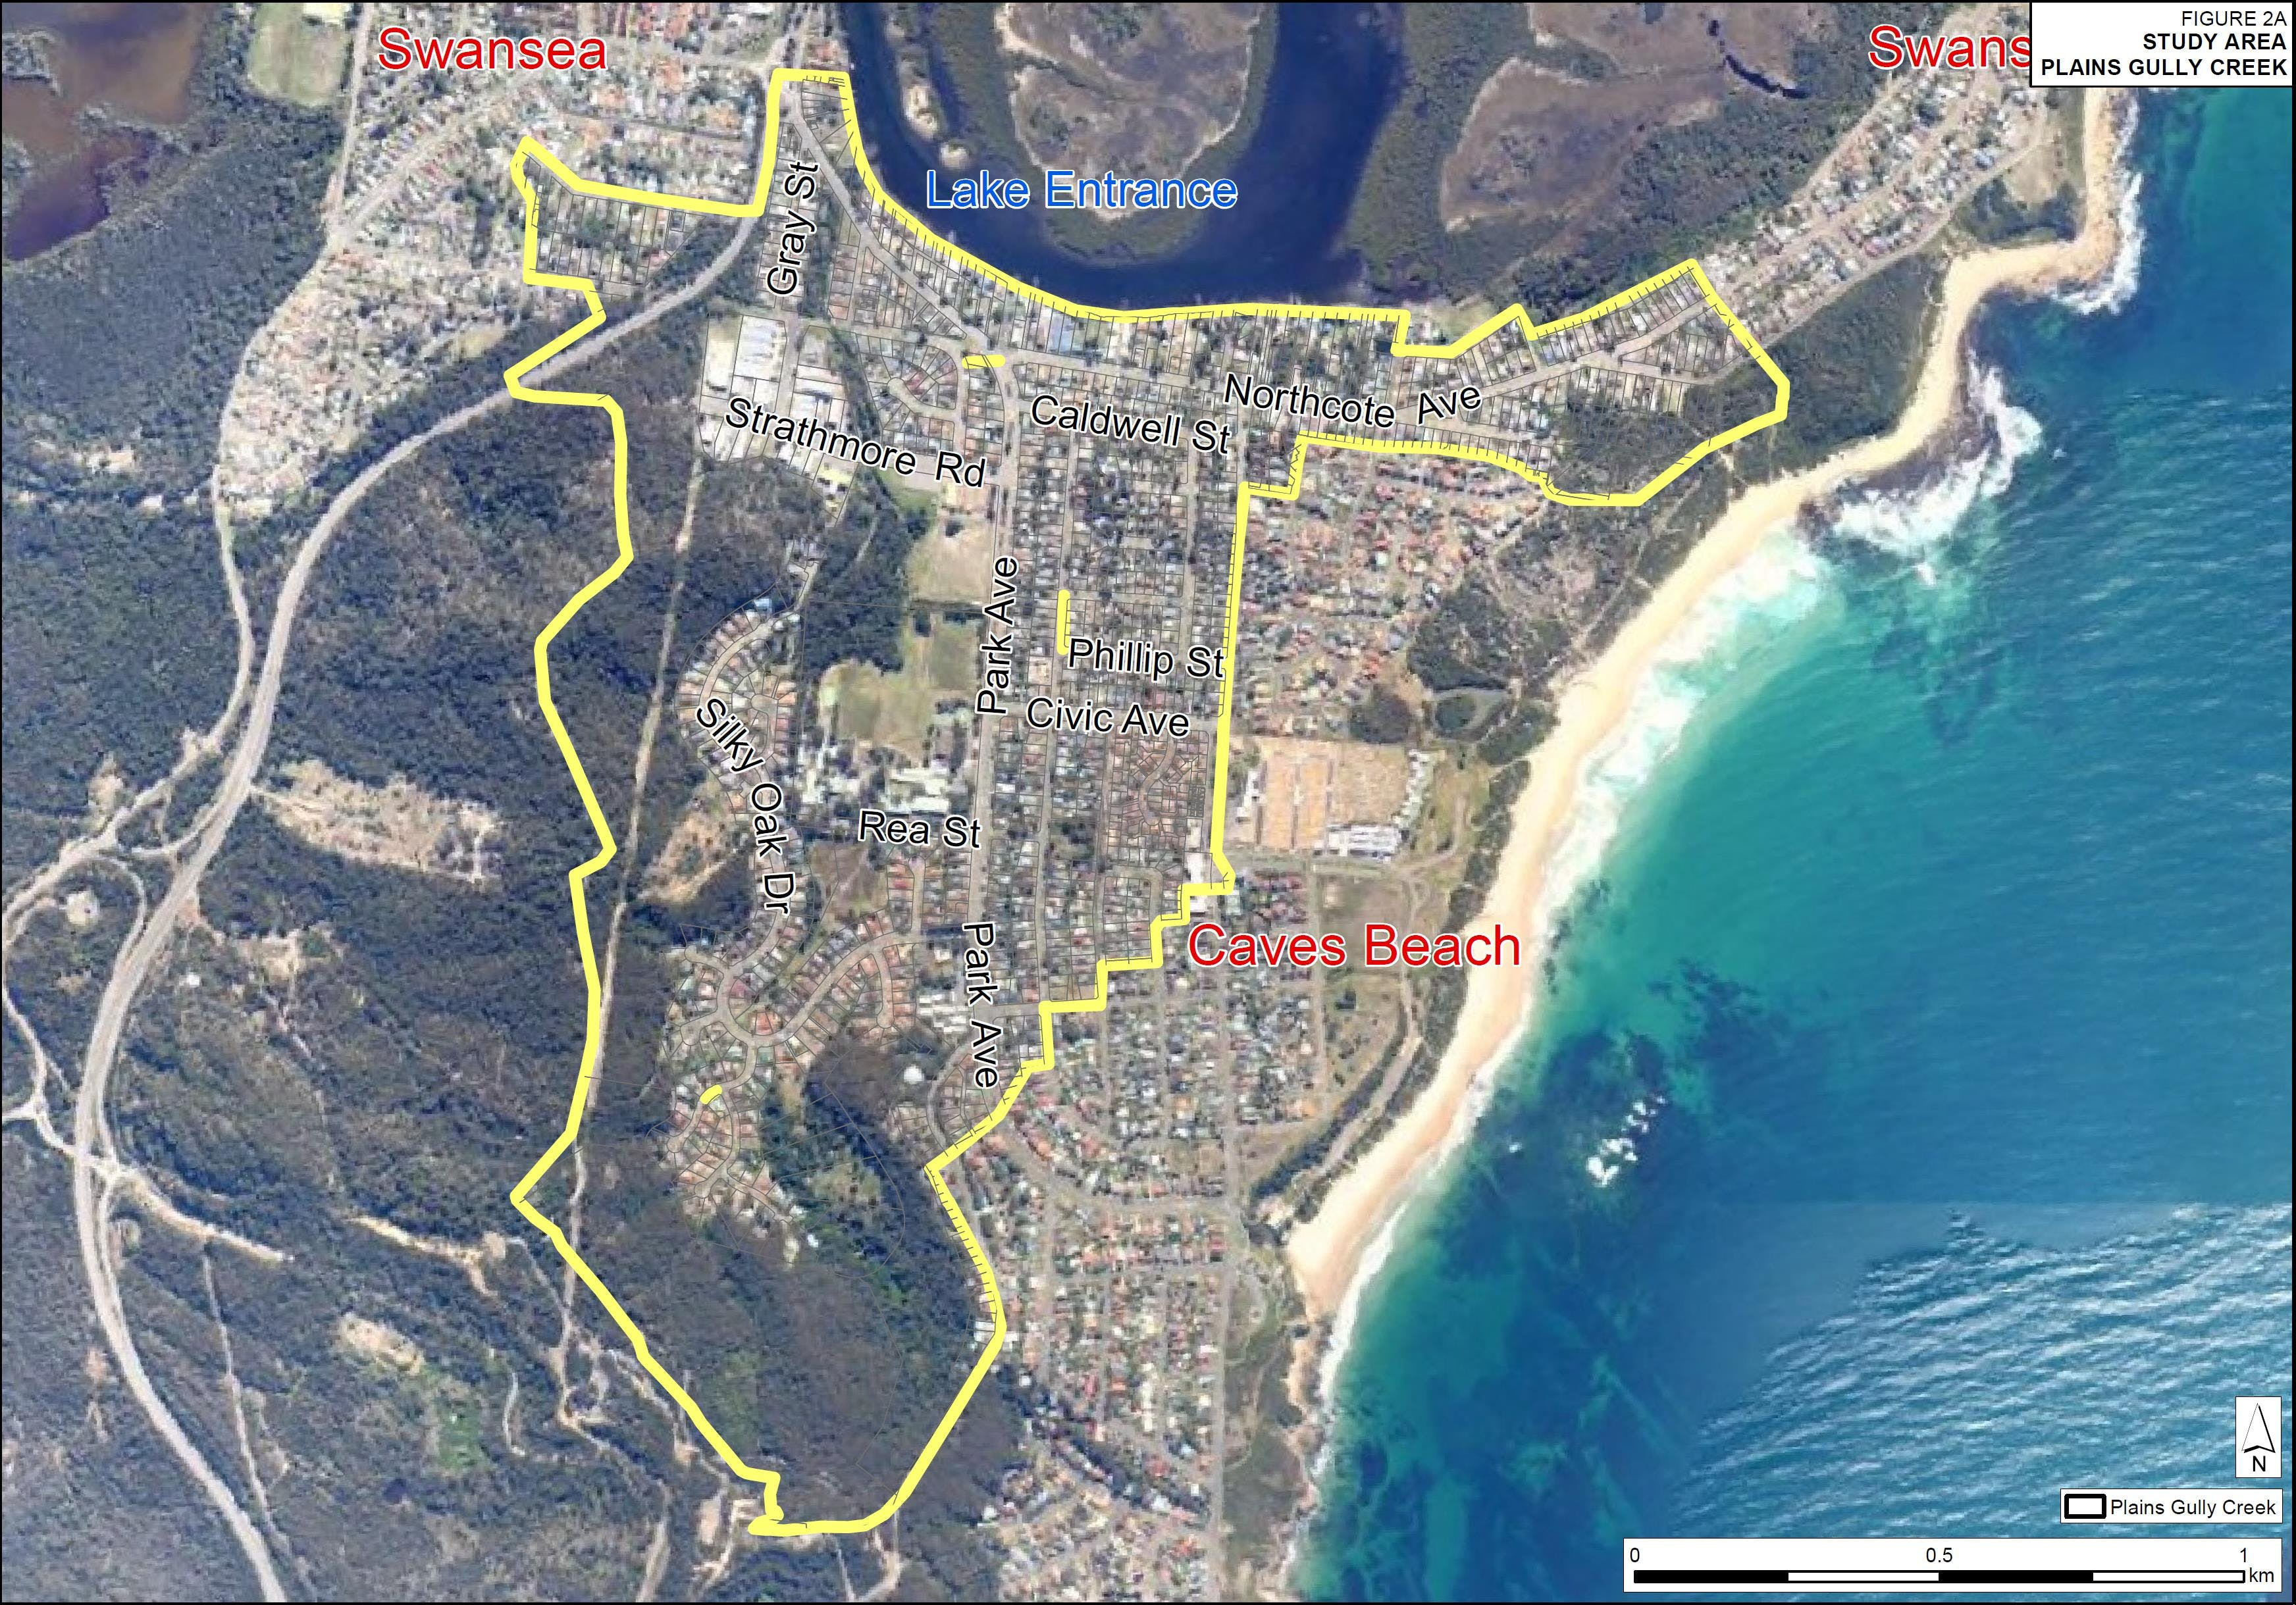 Plains Gully Creek at Swansea and Caves Beach flood study catchment